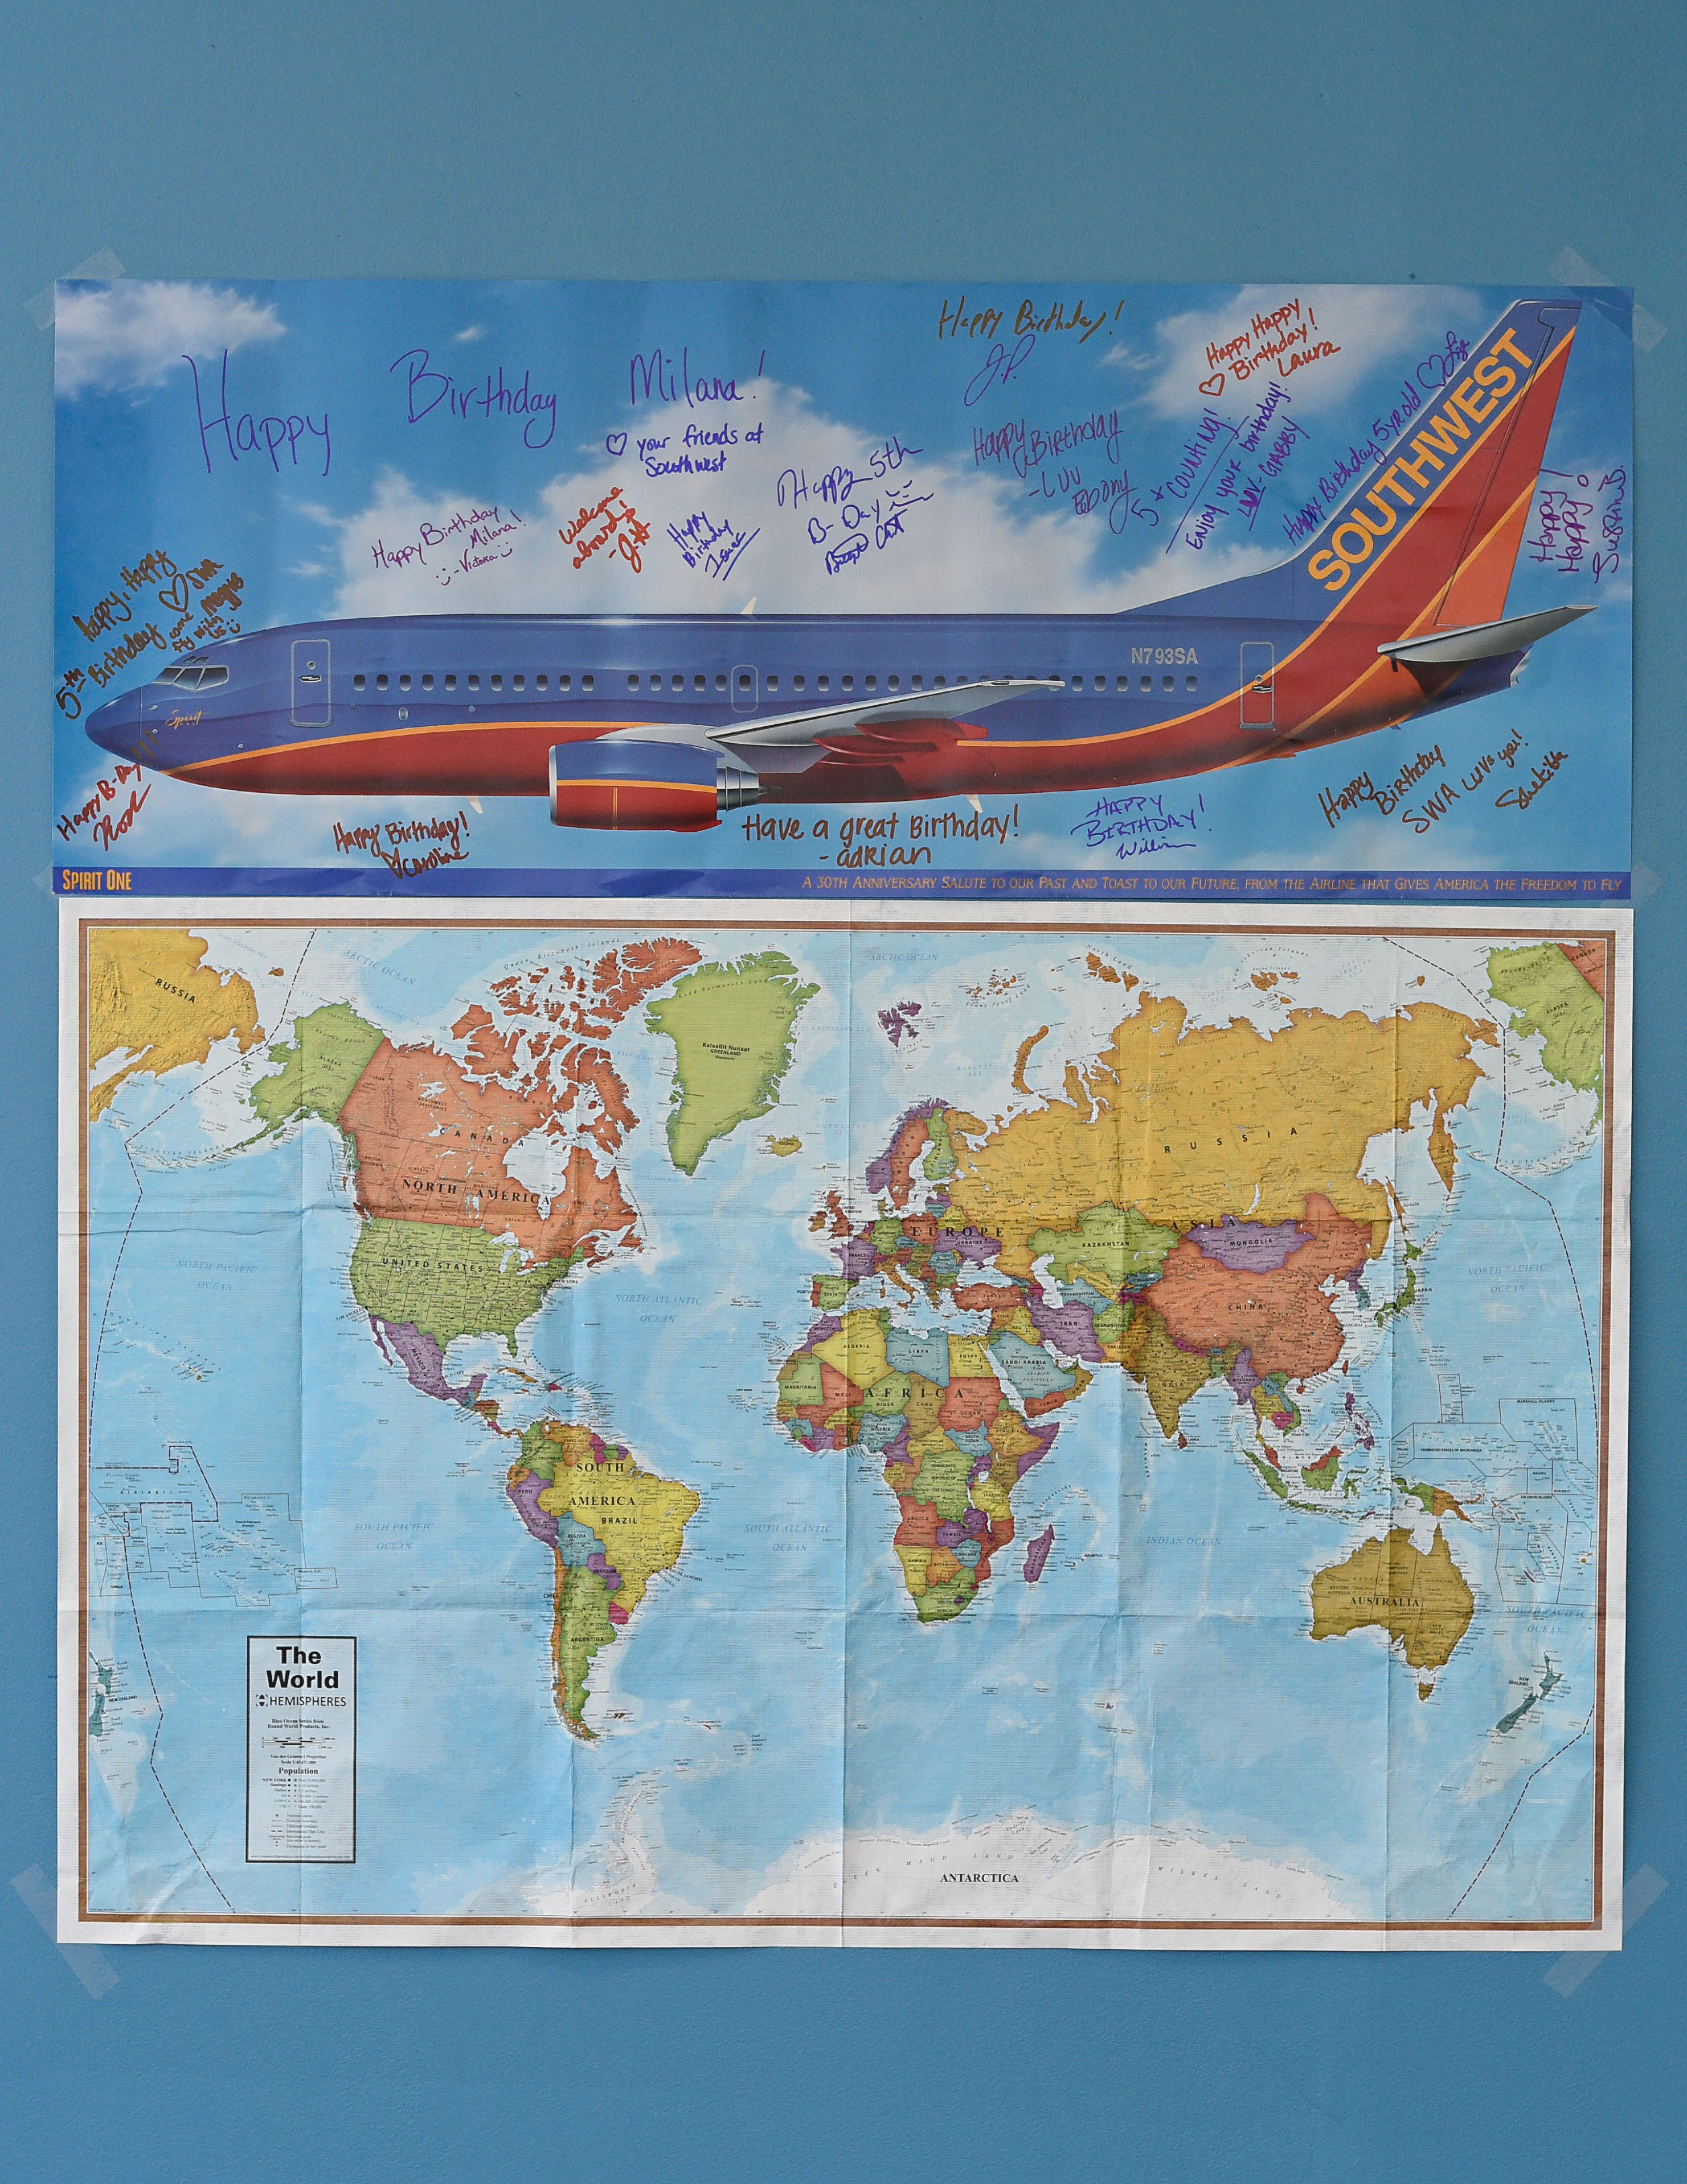 southwest airlines poster